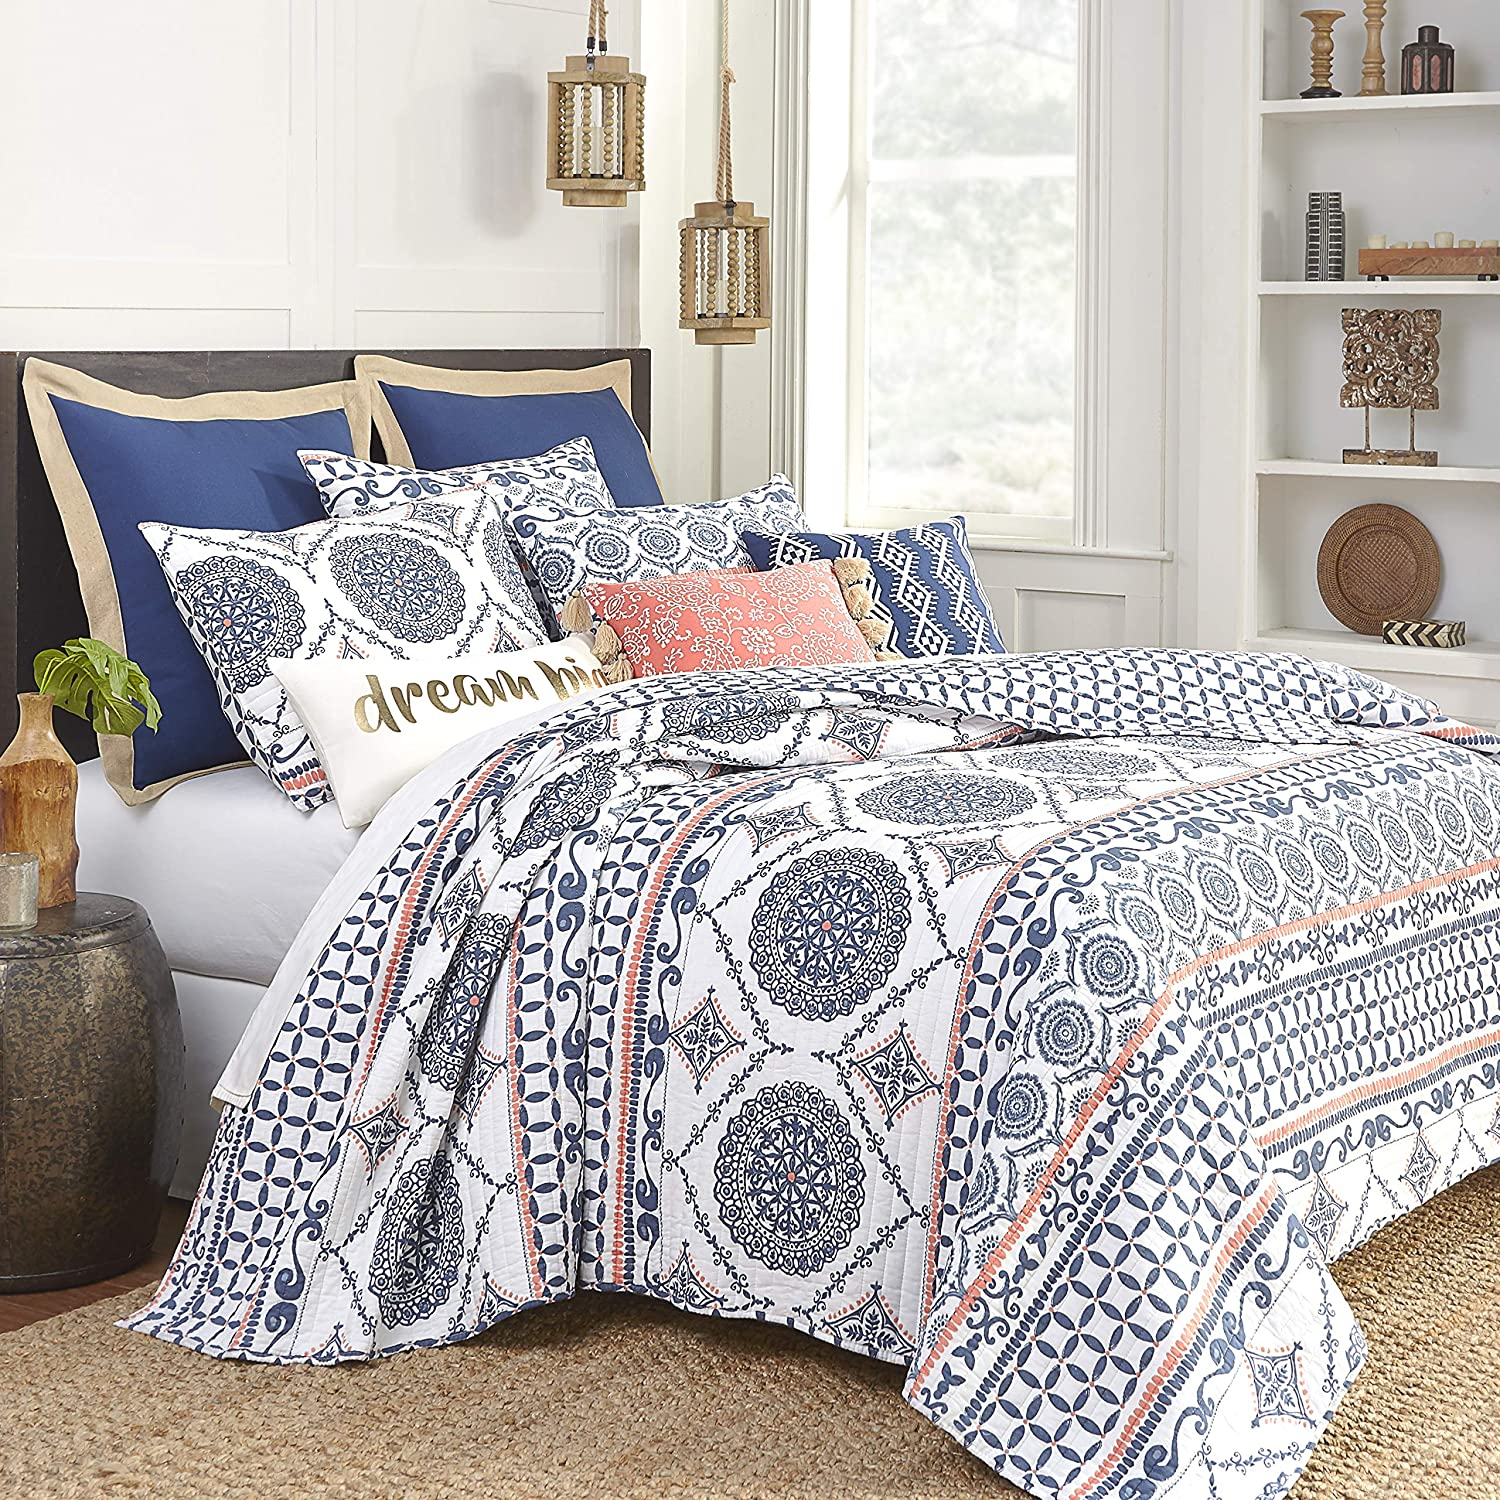 Levtex Home Caperoad Quilt Set King Quilt Two King Pillow Shams Medallion Geometric In Navy White Tangerine Quilt Size 106x92in And Pillow Sham Size 36x20in Reversible Cotton Walmart Com Walmart Com